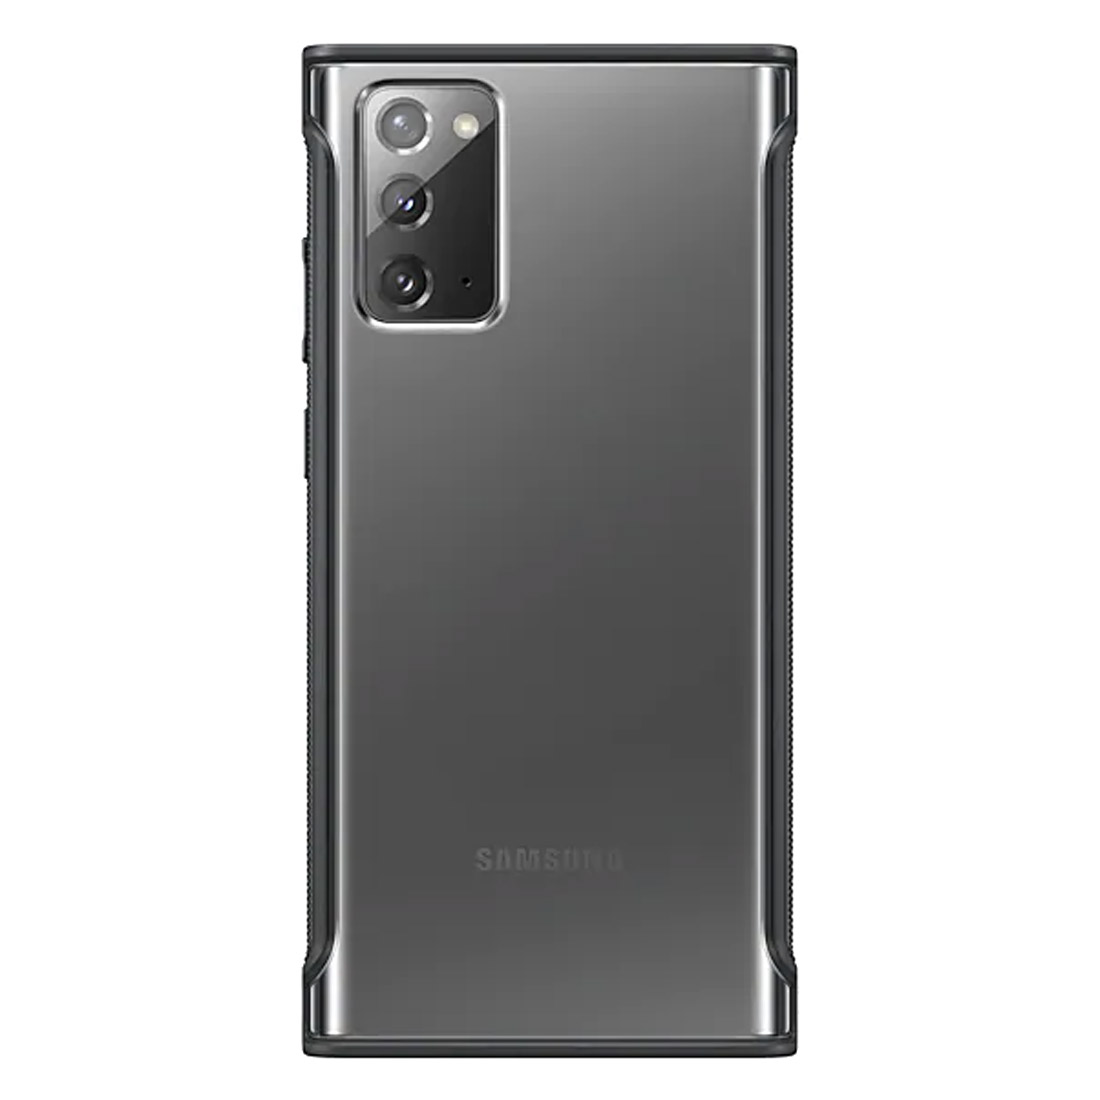 Samsung Galaxy Note 20 Clear Protective Cover - Black